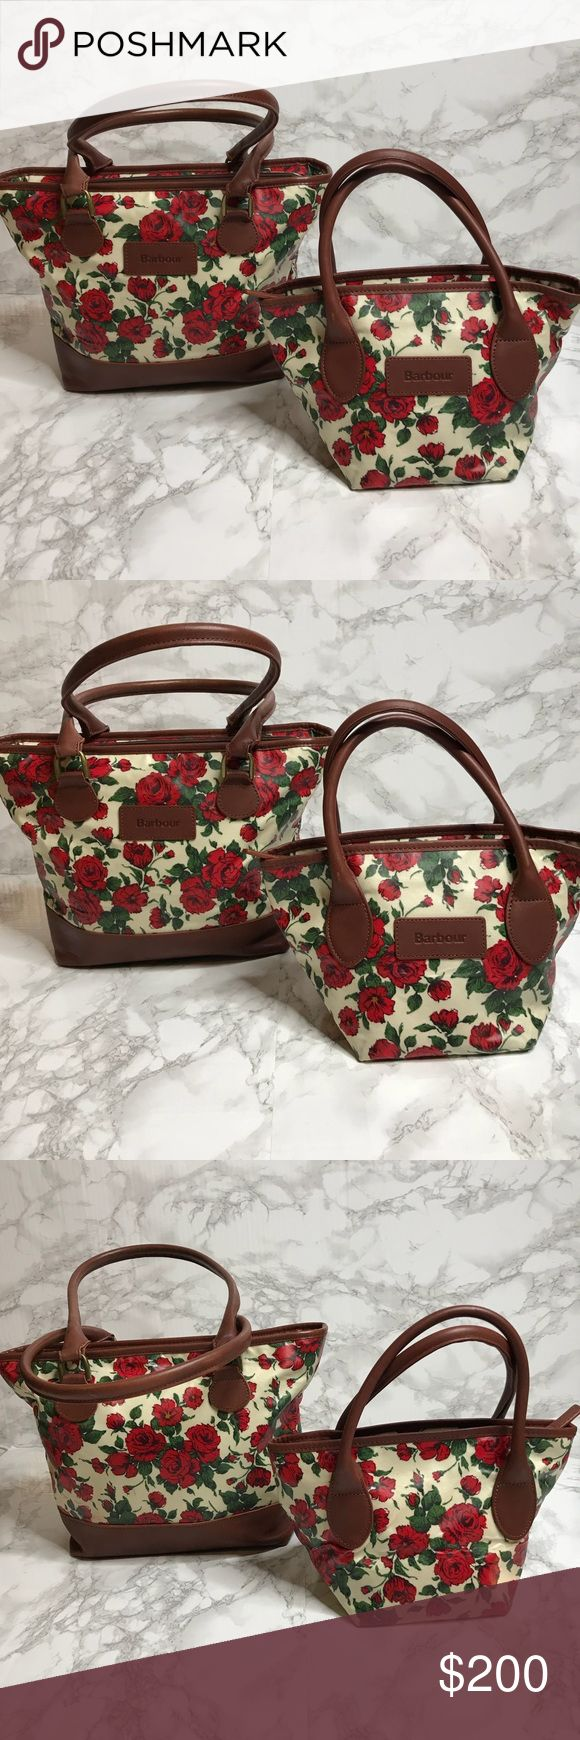 "Barbour Wax and Leather Floral Shoulder Bags Set of 2! Gently used and in very good condition! Measurements: large is 14"" x 10"" x 4"" and small is 11"" x 7"" x 6"" Barbour Bags Shoulder Bags"